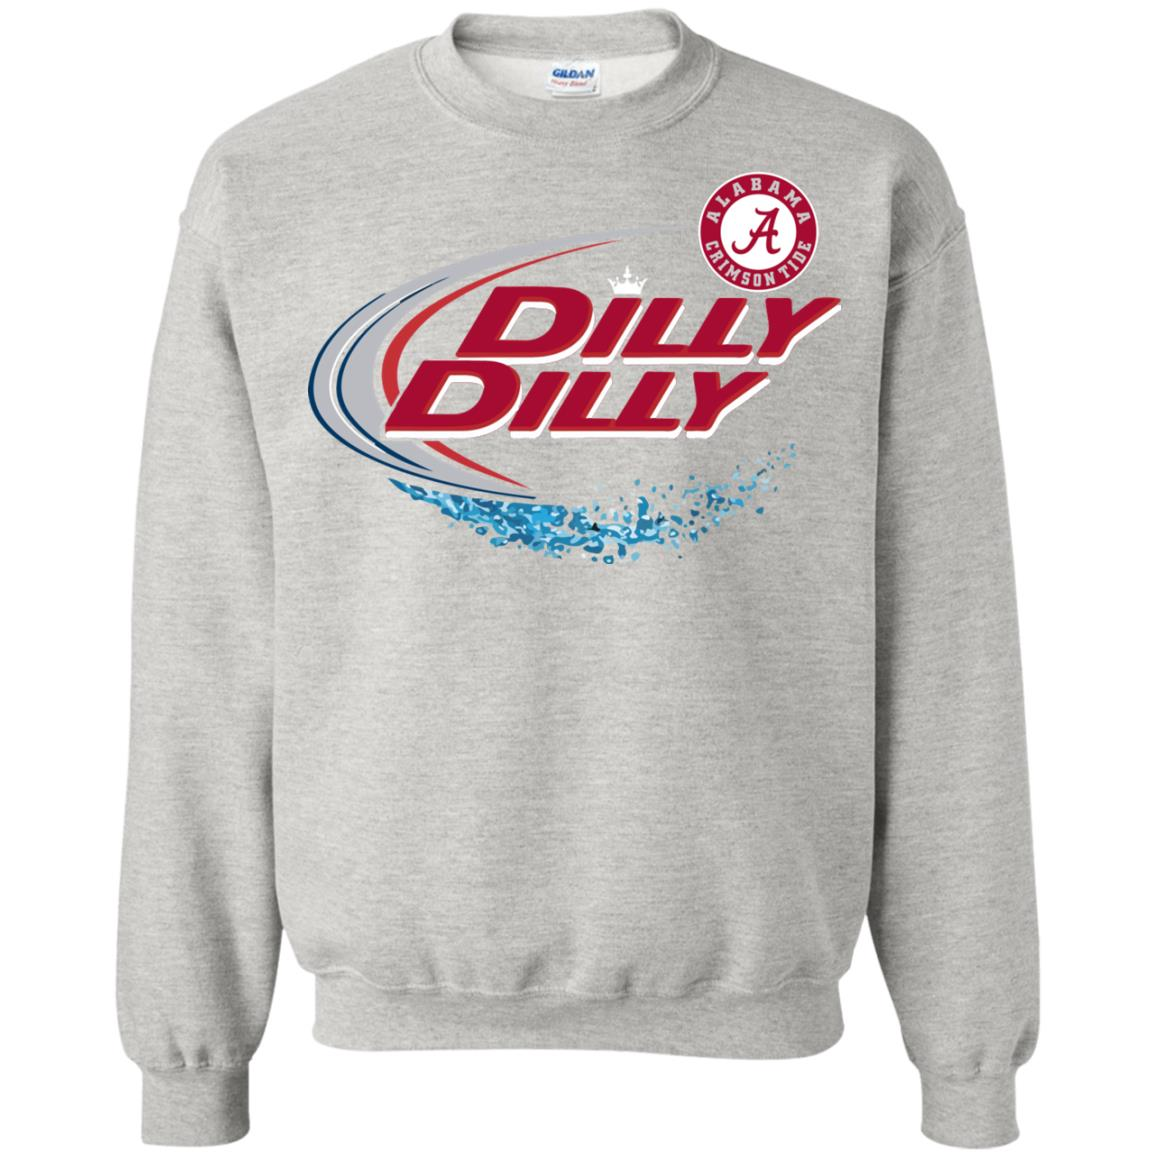 image 92 - Dilly Dilly T-shirt Crimson Tide